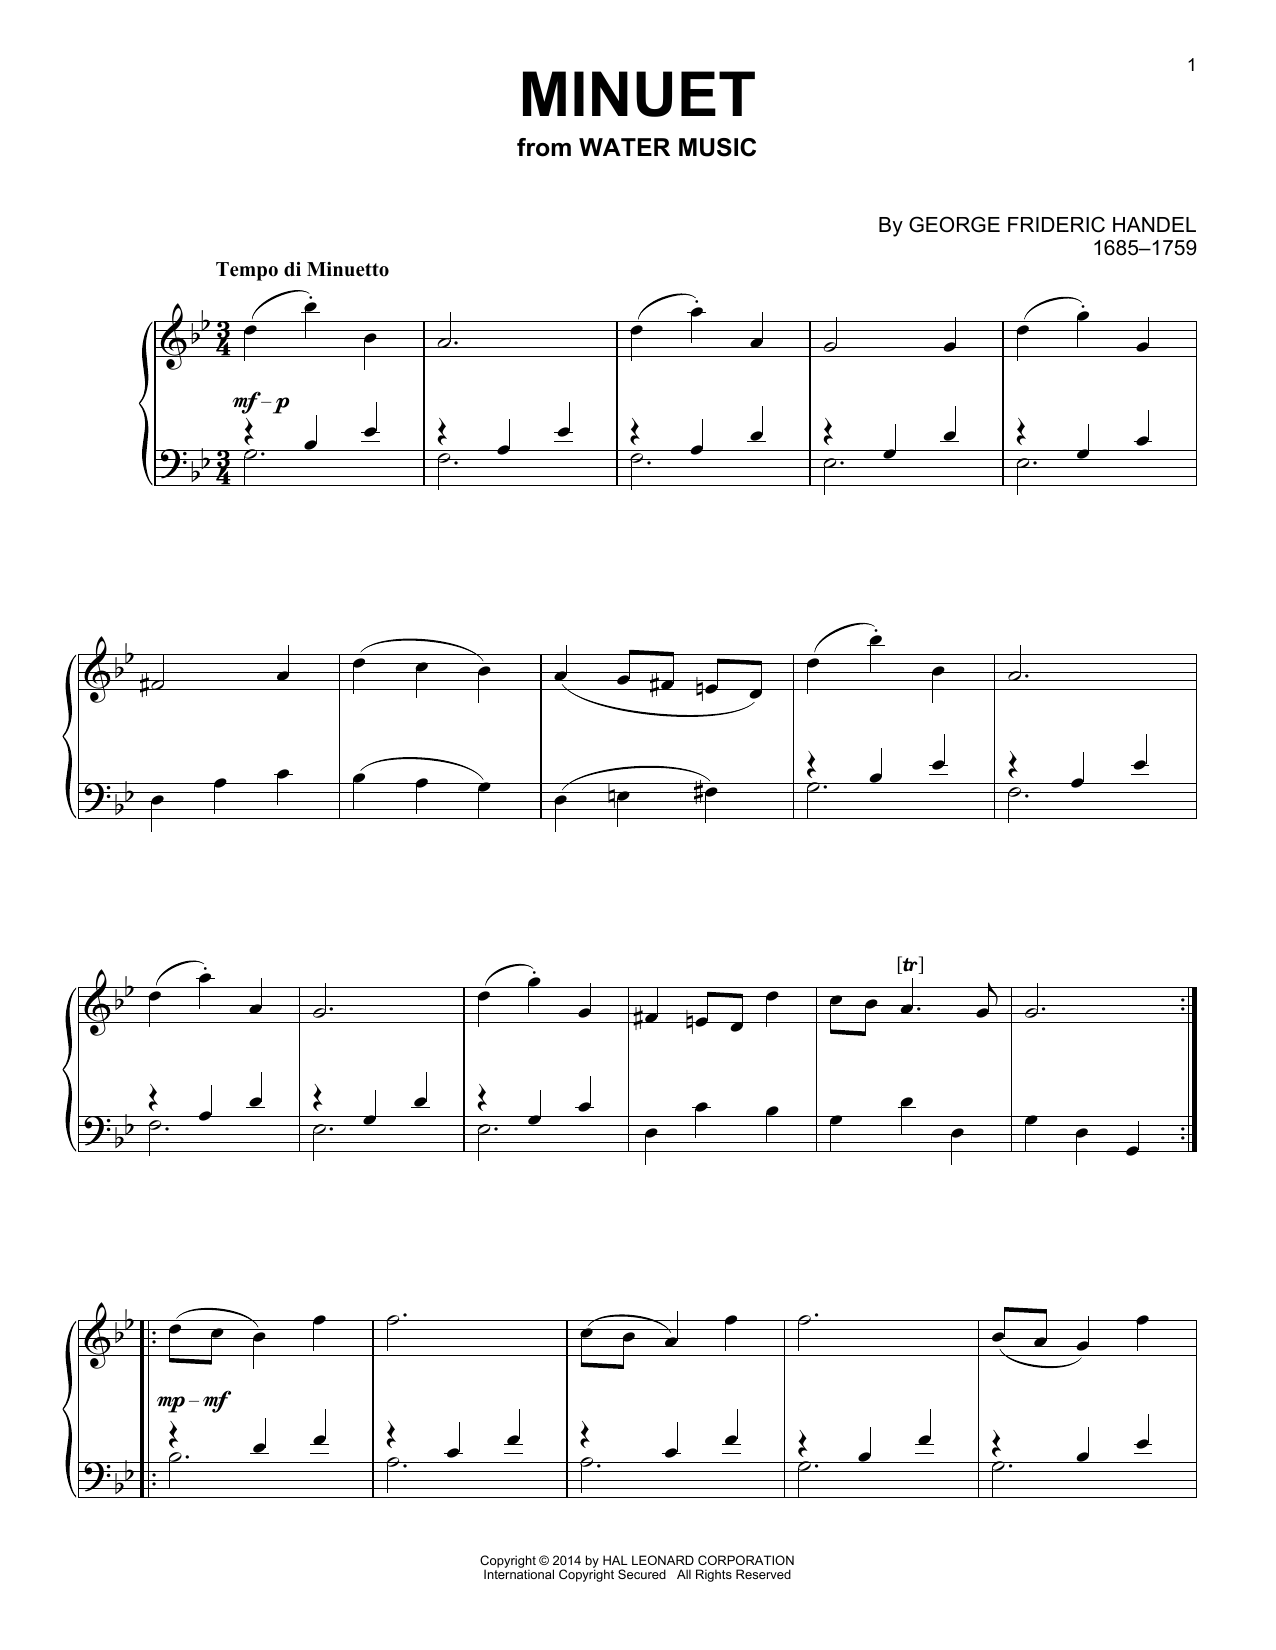 George Frideric Handel Minuet sheet music notes and chords